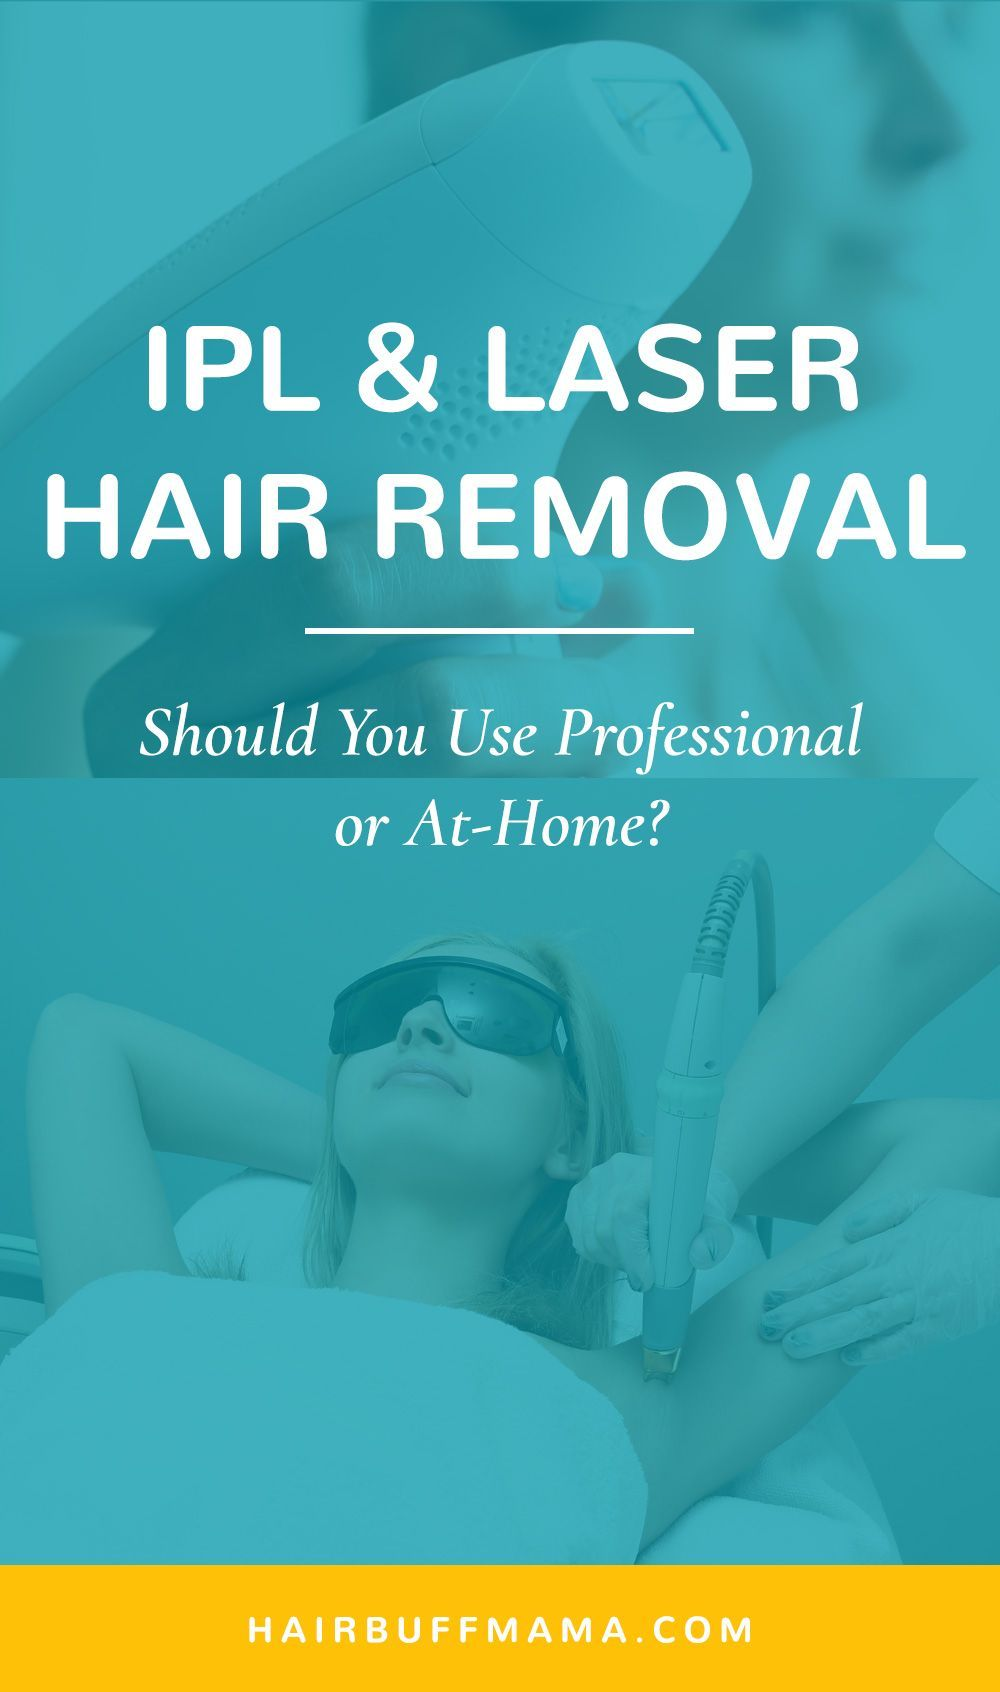 IPL and Laser Hair Removal Should You Use Professional or AtHome